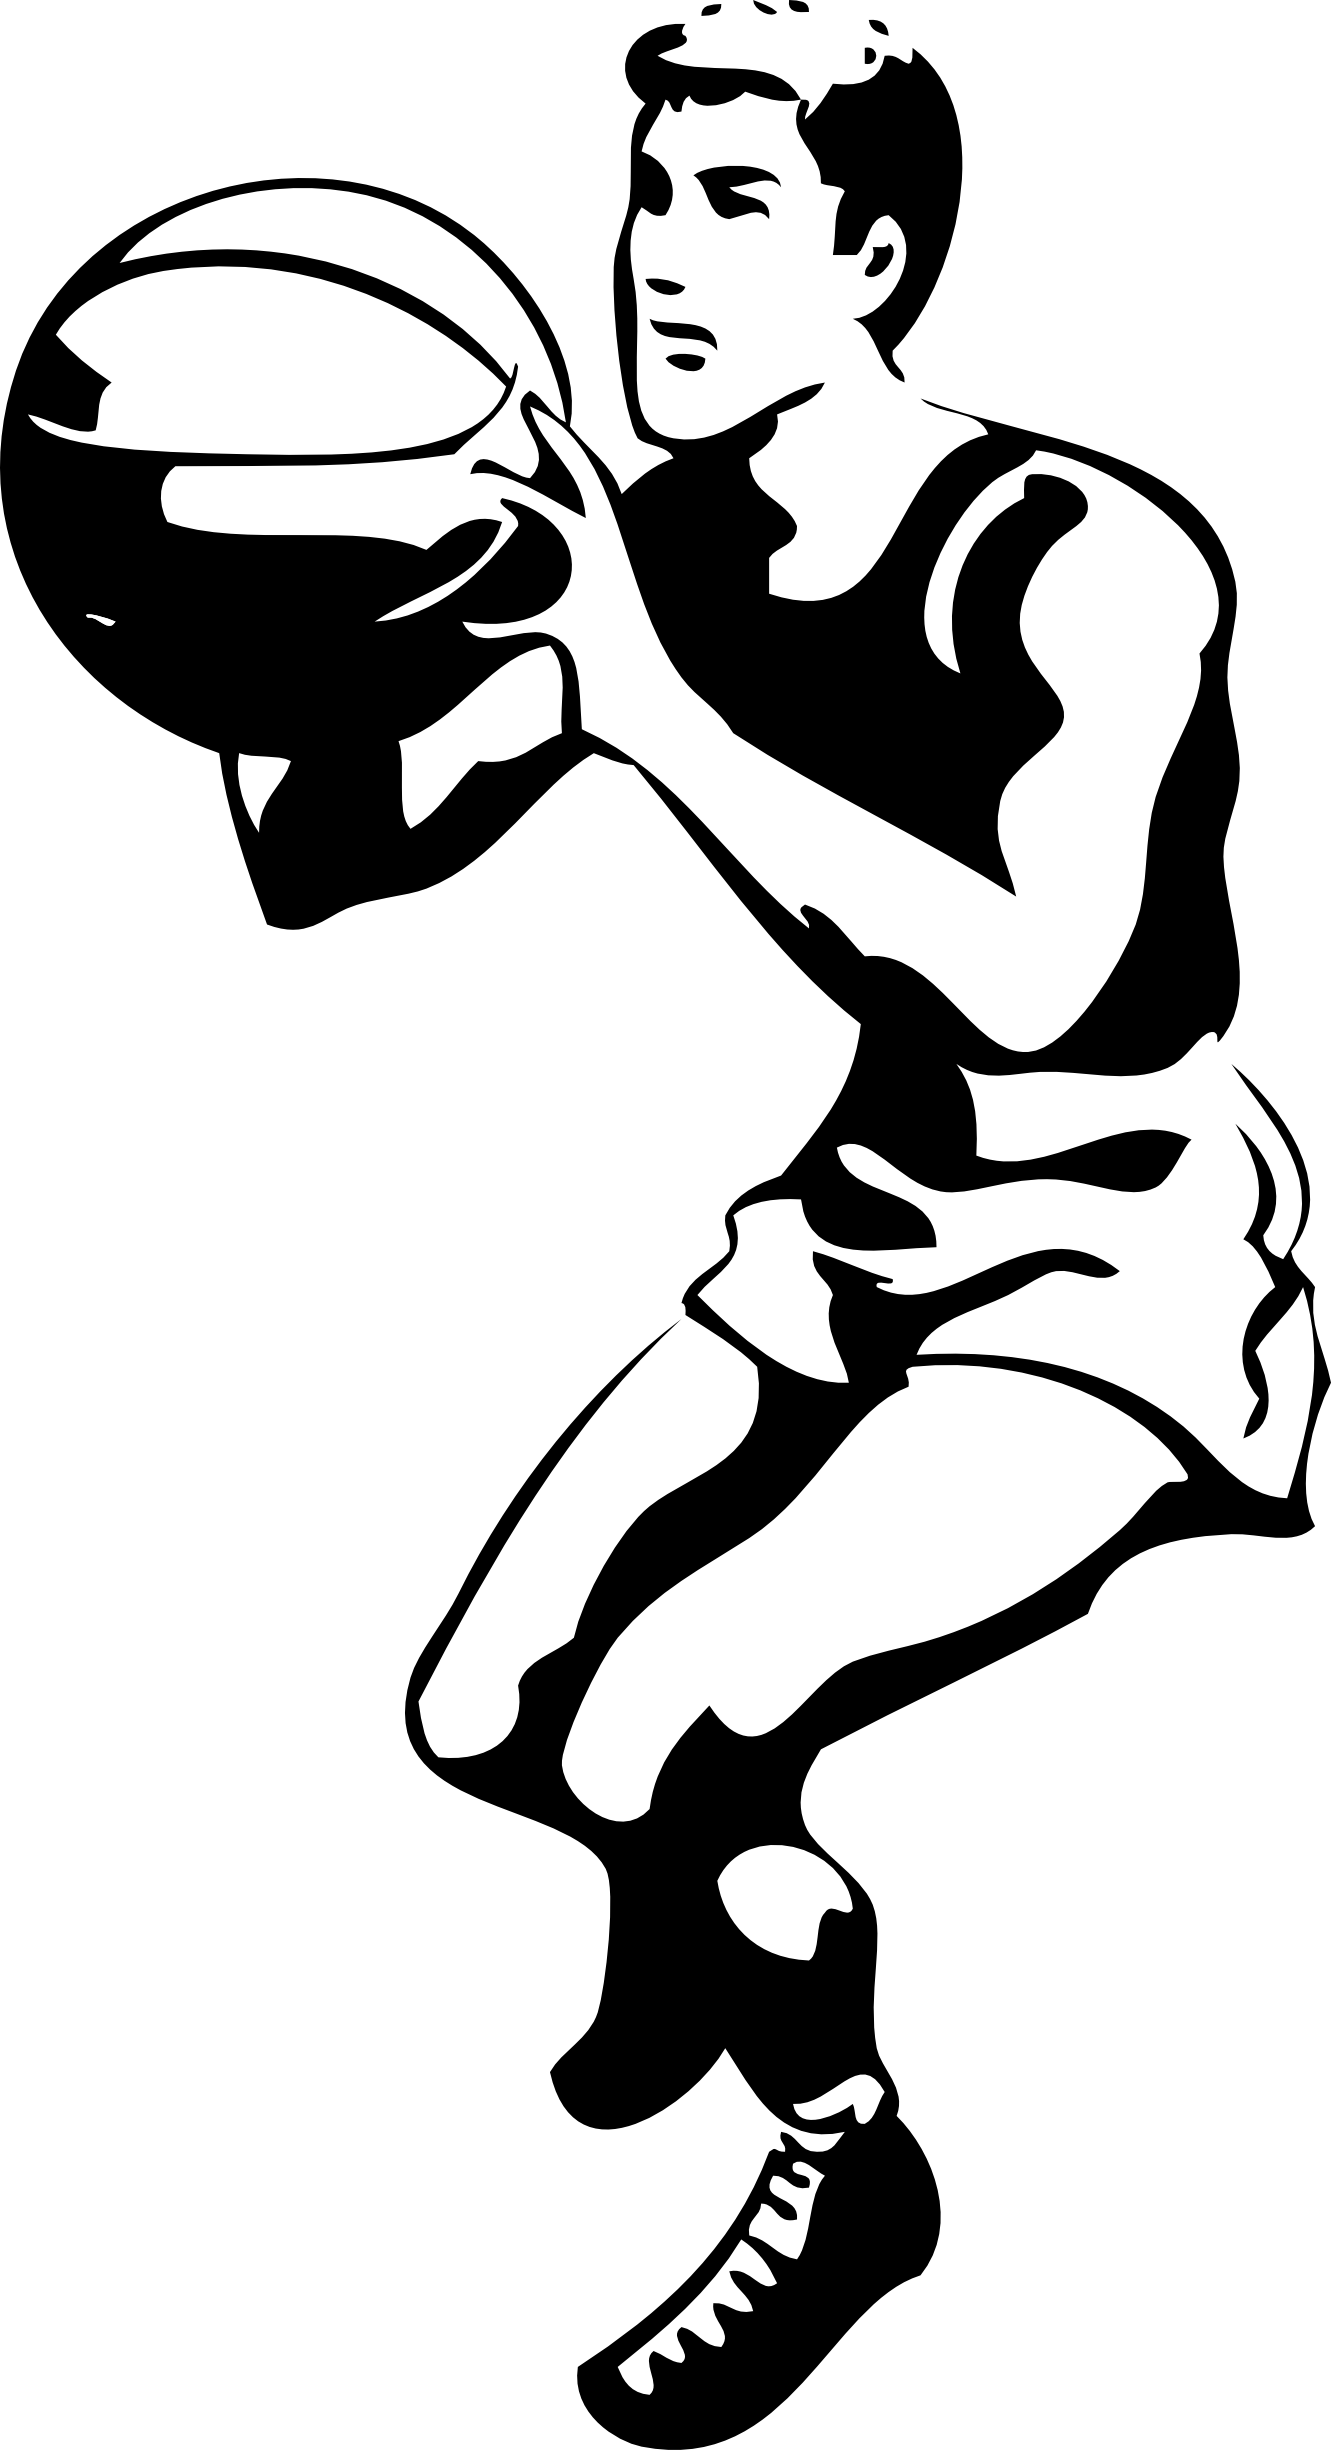 Basketball player dunking clipart png library stock Basketball Player Clipart Black And White | Clipart Panda - Free ... png library stock